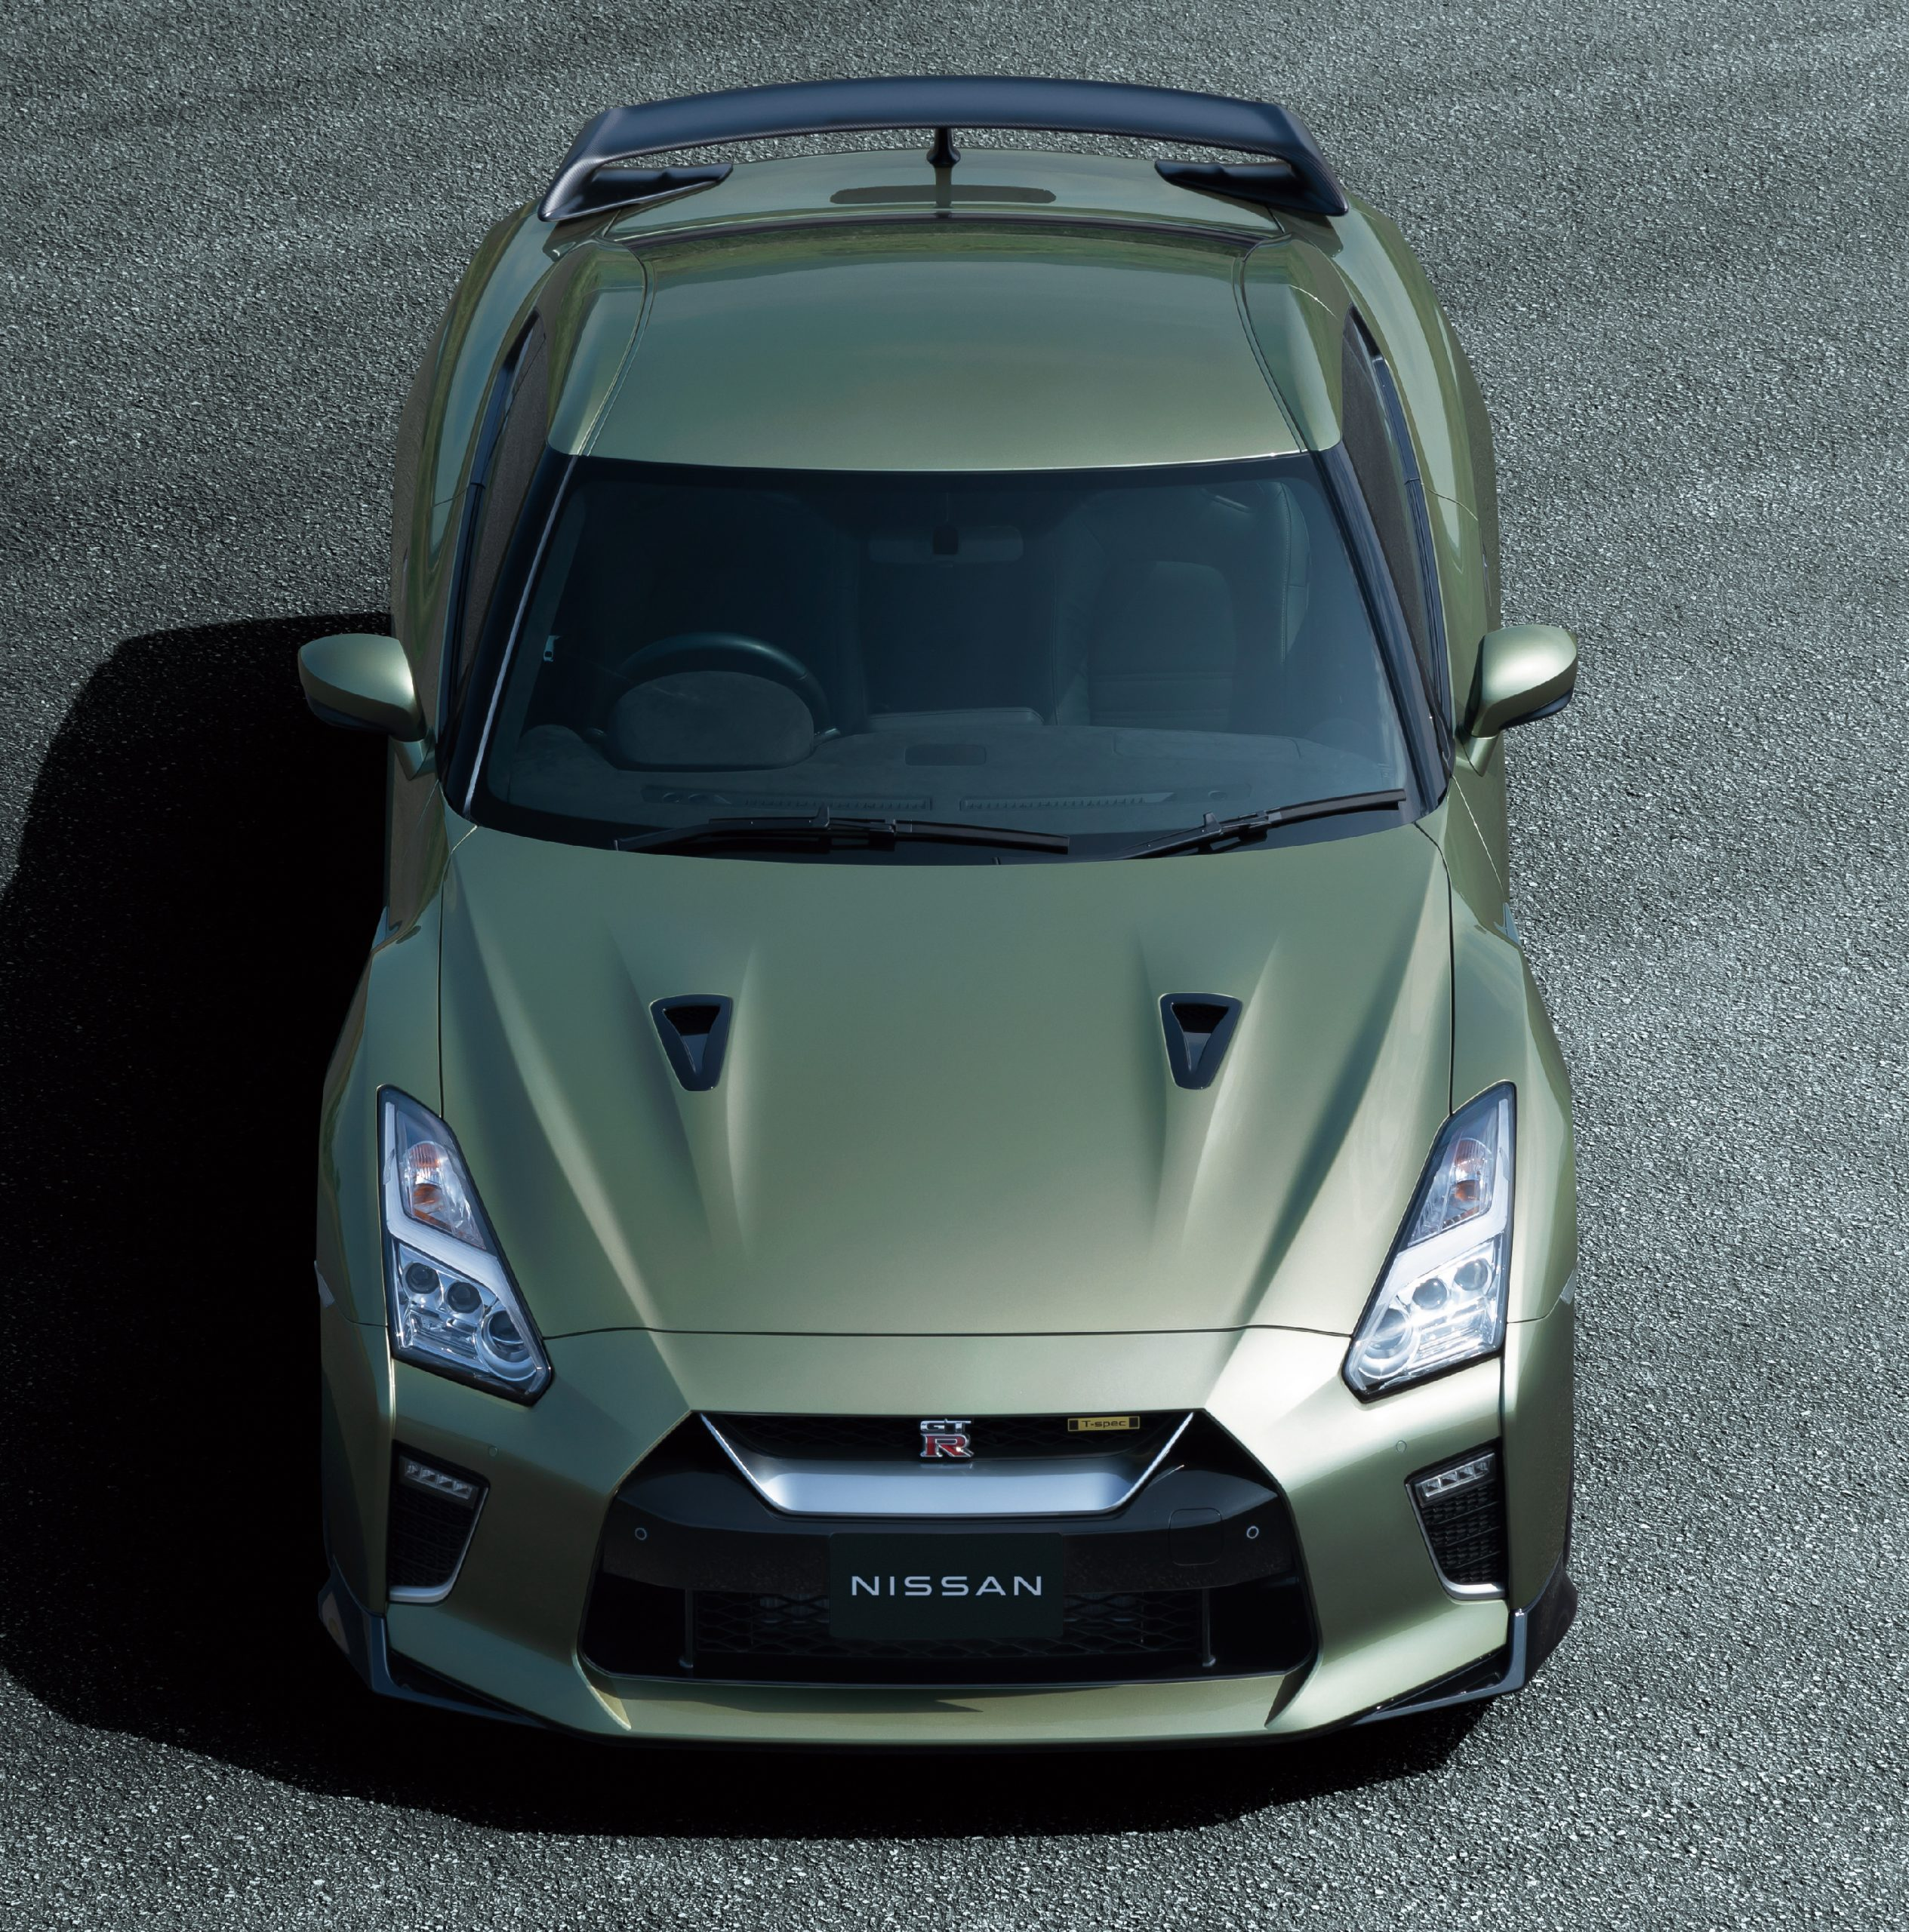 2022 Nissan GT-R front